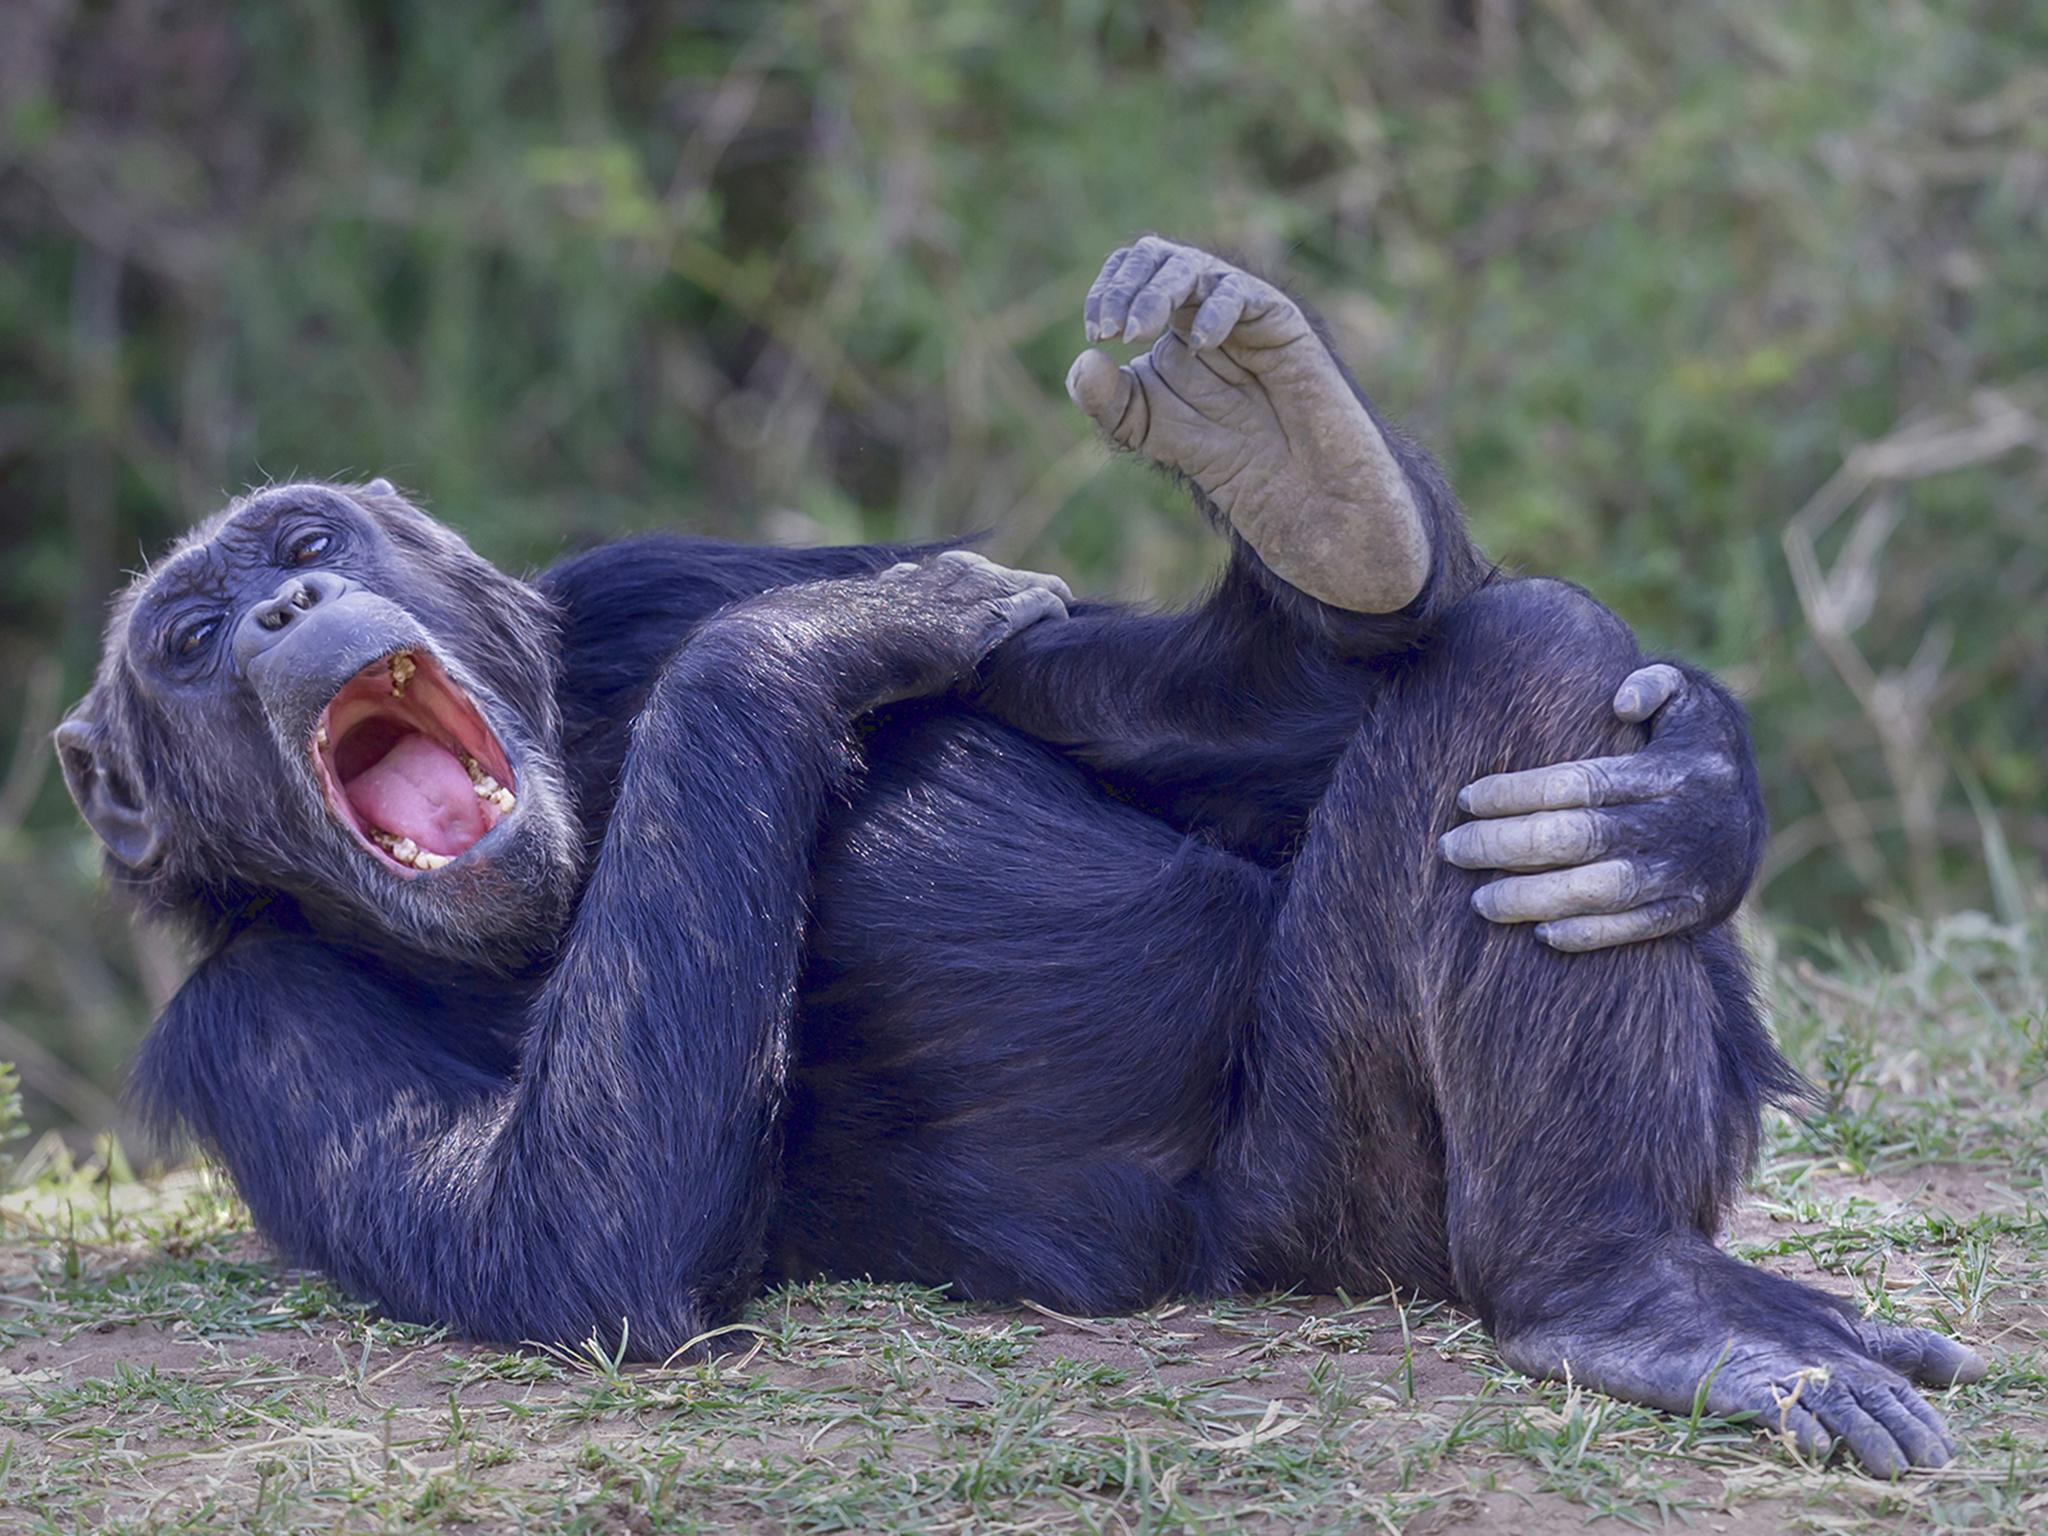 Comedy wildlife photography awards returns for 2020